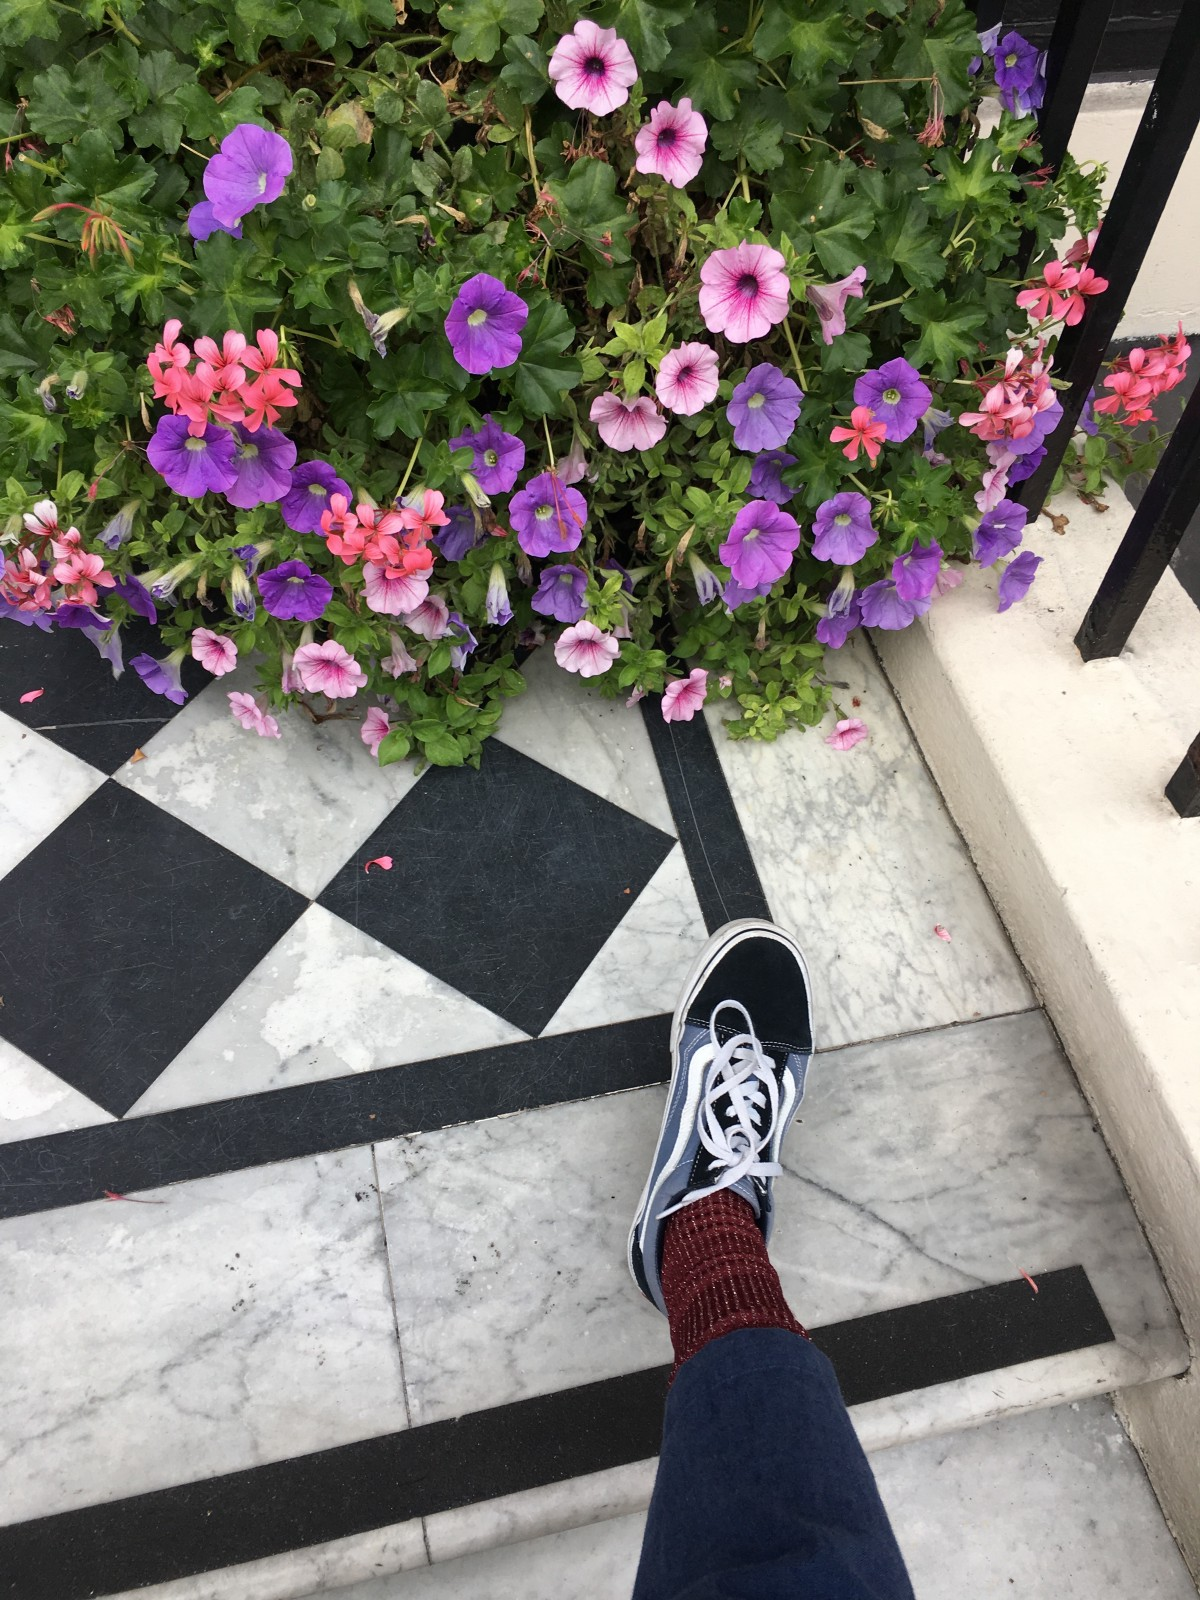 Slowing down in London, admiring the flowers at every turn.